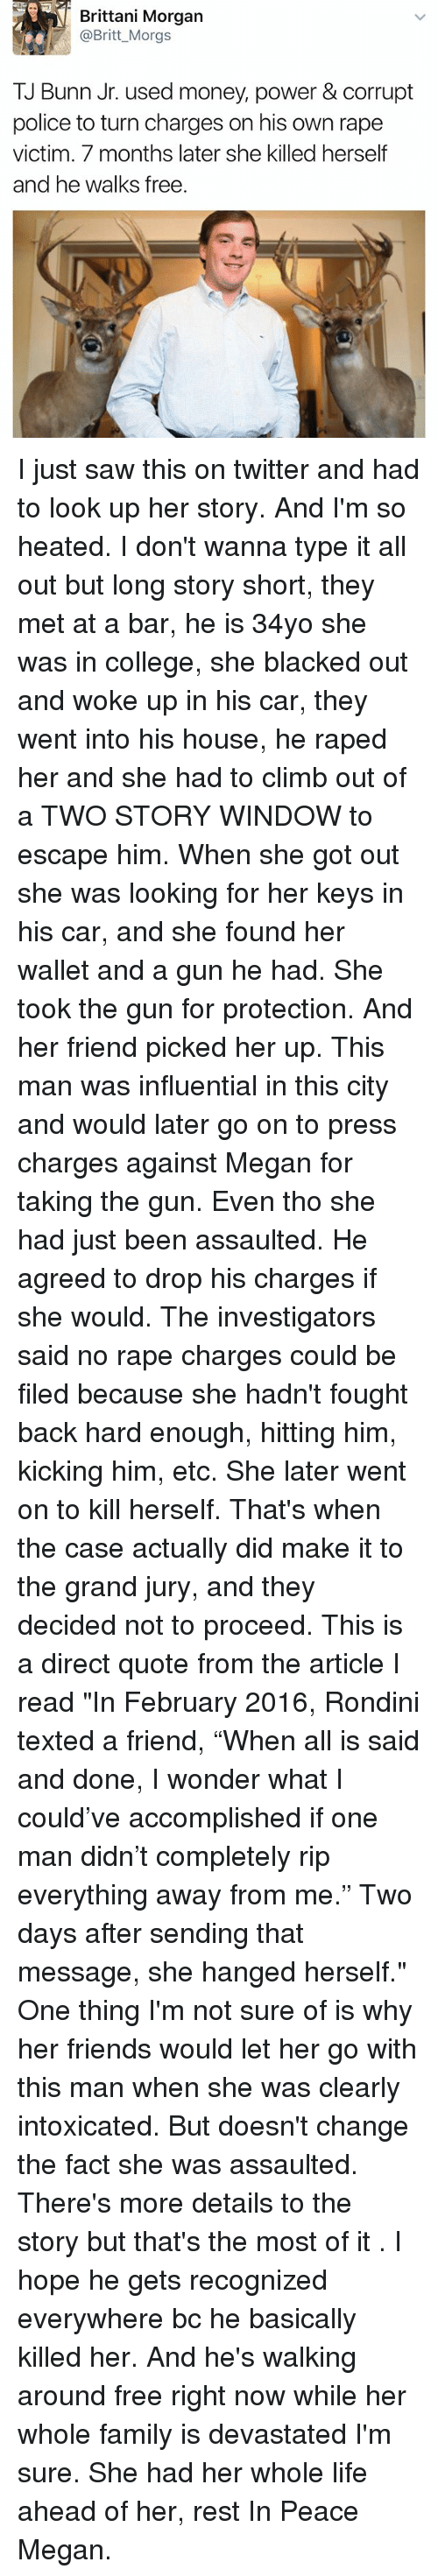 """Megane: Brittani Morgan  @Britt_Morgs  TJ Bunn Jr. used money, power & corrupt  police to turn charges on his own rape  victim. 7 months later she killed herself  and he walks free. I just saw this on twitter and had to look up her story. And I'm so heated. I don't wanna type it all out but long story short, they met at a bar, he is 34yo she was in college, she blacked out and woke up in his car, they went into his house, he raped her and she had to climb out of a TWO STORY WINDOW to escape him. When she got out she was looking for her keys in his car, and she found her wallet and a gun he had. She took the gun for protection. And her friend picked her up. This man was influential in this city and would later go on to press charges against Megan for taking the gun. Even tho she had just been assaulted. He agreed to drop his charges if she would. The investigators said no rape charges could be filed because she hadn't fought back hard enough, hitting him, kicking him, etc. She later went on to kill herself. That's when the case actually did make it to the grand jury, and they decided not to proceed. This is a direct quote from the article I read """"In February 2016, Rondini texted a friend, """"When all is said and done, I wonder what I could've accomplished if one man didn't completely rip everything away from me."""" Two days after sending that message, she hanged herself."""" One thing I'm not sure of is why her friends would let her go with this man when she was clearly intoxicated. But doesn't change the fact she was assaulted. There's more details to the story but that's the most of it . I hope he gets recognized everywhere bc he basically killed her. And he's walking around free right now while her whole family is devastated I'm sure. She had her whole life ahead of her, rest In Peace Megan."""